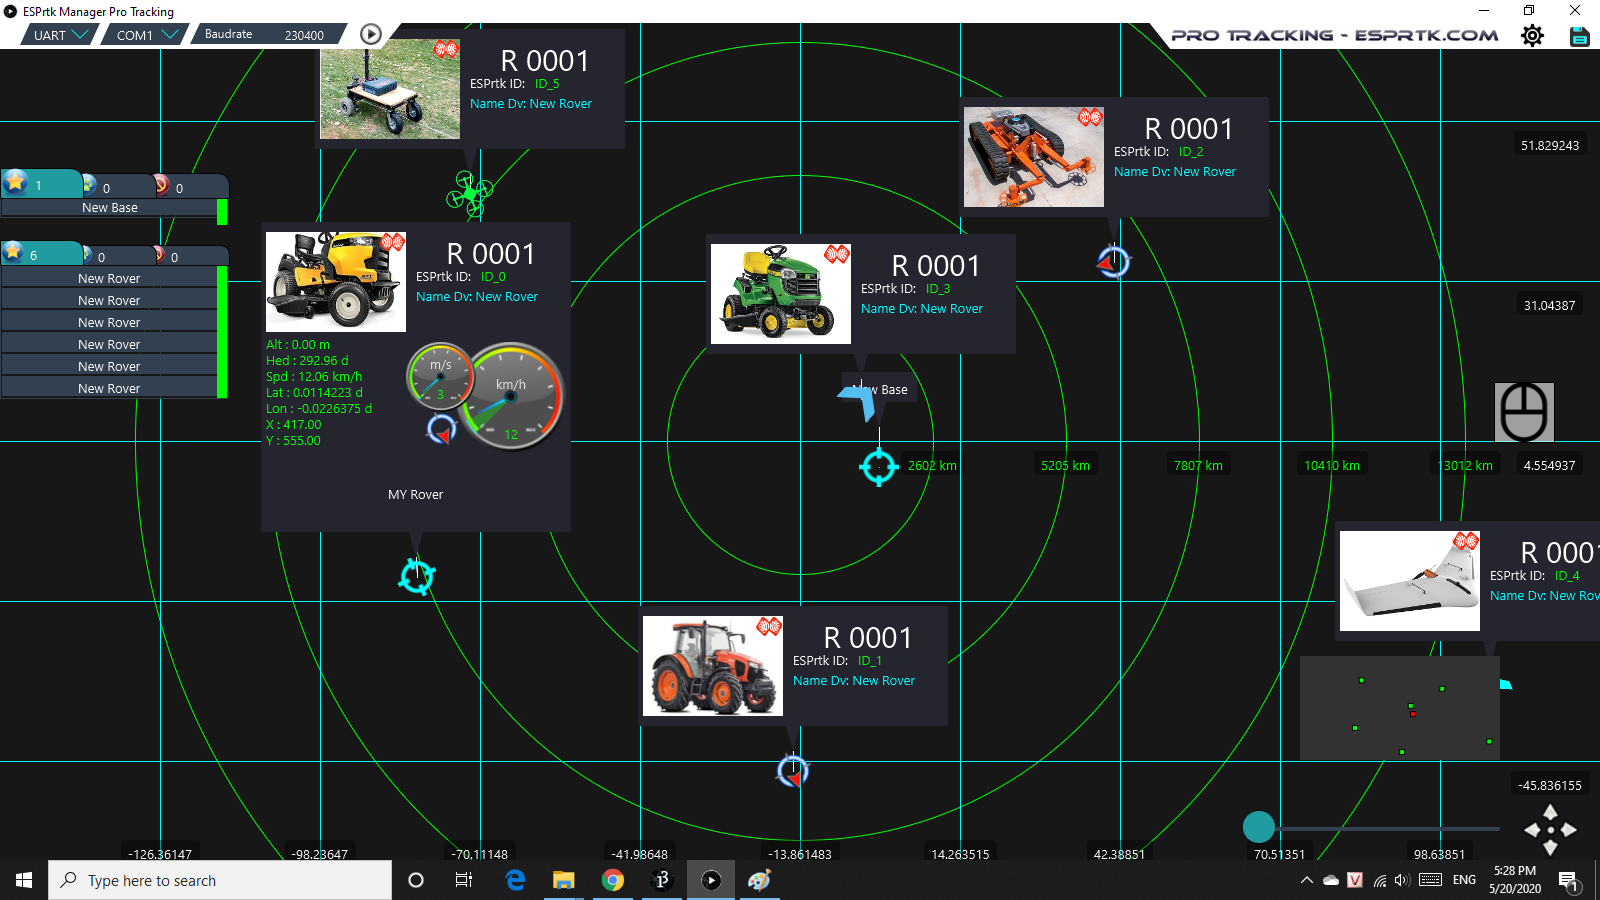 Image (8), Link : https://esprtk.files.wordpress.com/2020/05/esprtk_pro_tracking_rover_manager_custom_style_view2.png - Copy right ESPrtk